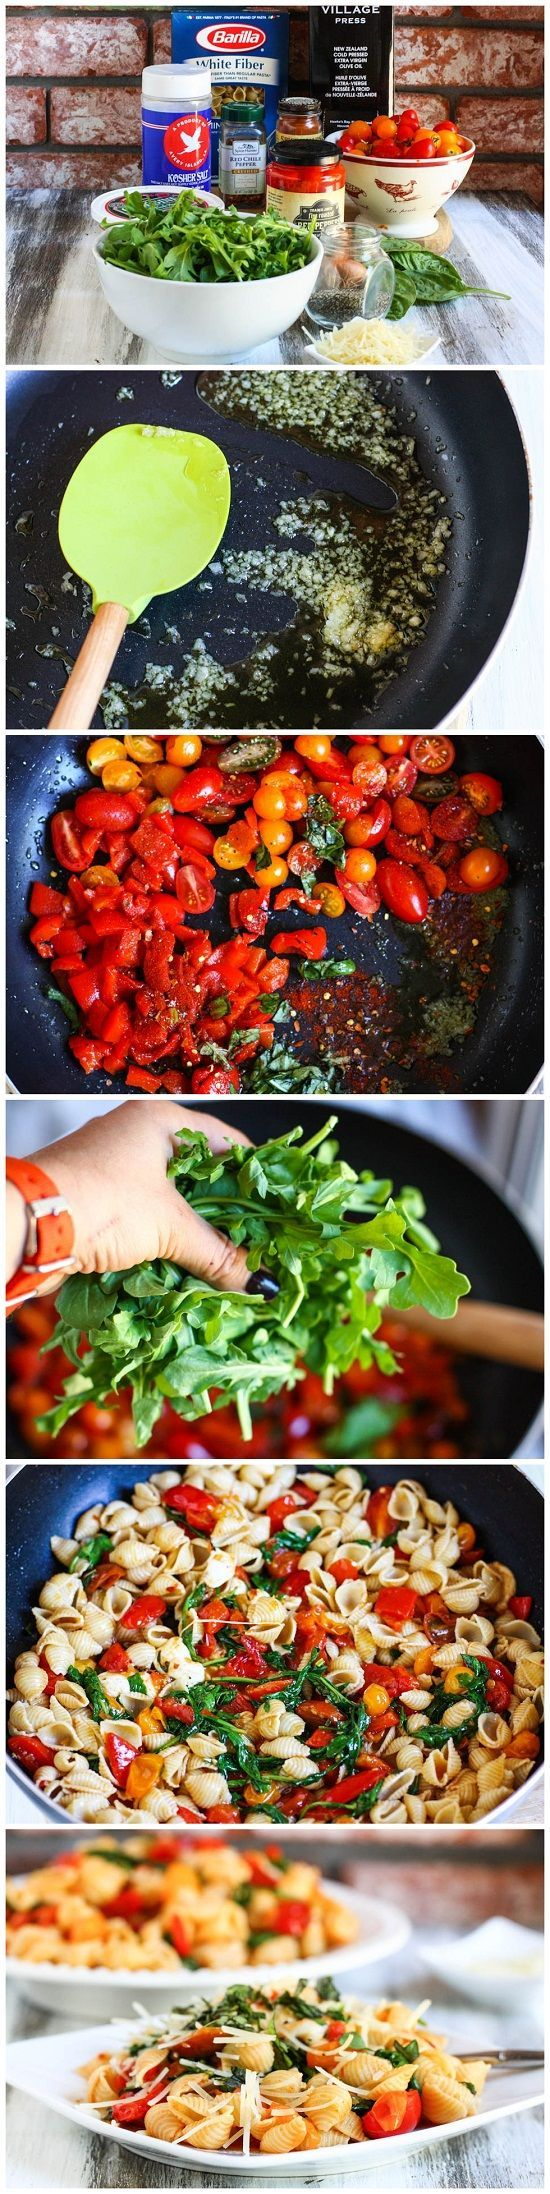 Tomato, Roasted Pepper and Arugula Pasta | Looks like a really healthy pasta to make. #youresopretty